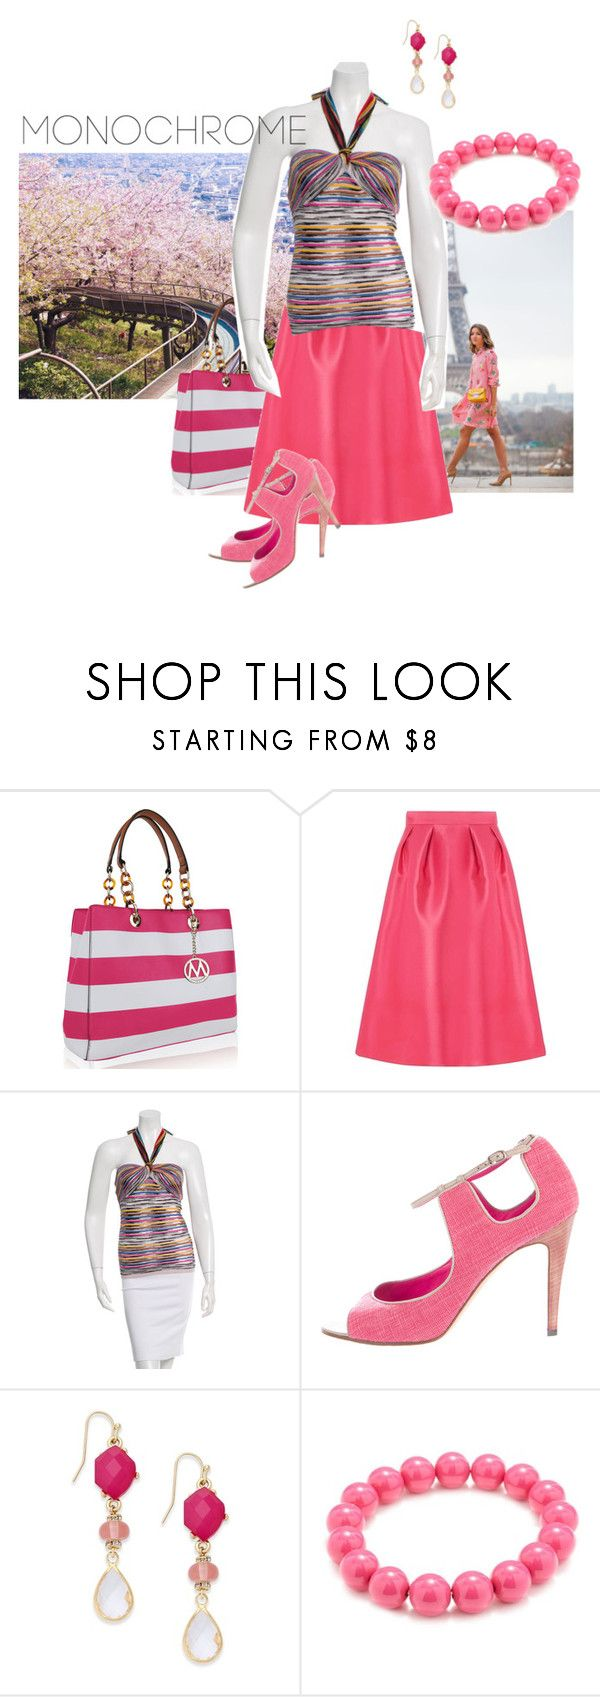 Pink for summer by maria-kuroshchepova on Polyvore featuring M Missoni, Dorothy Perkins, Manolo Blahnik, MKF Collection, INC International Concepts, Kim Rogers and monochromepink